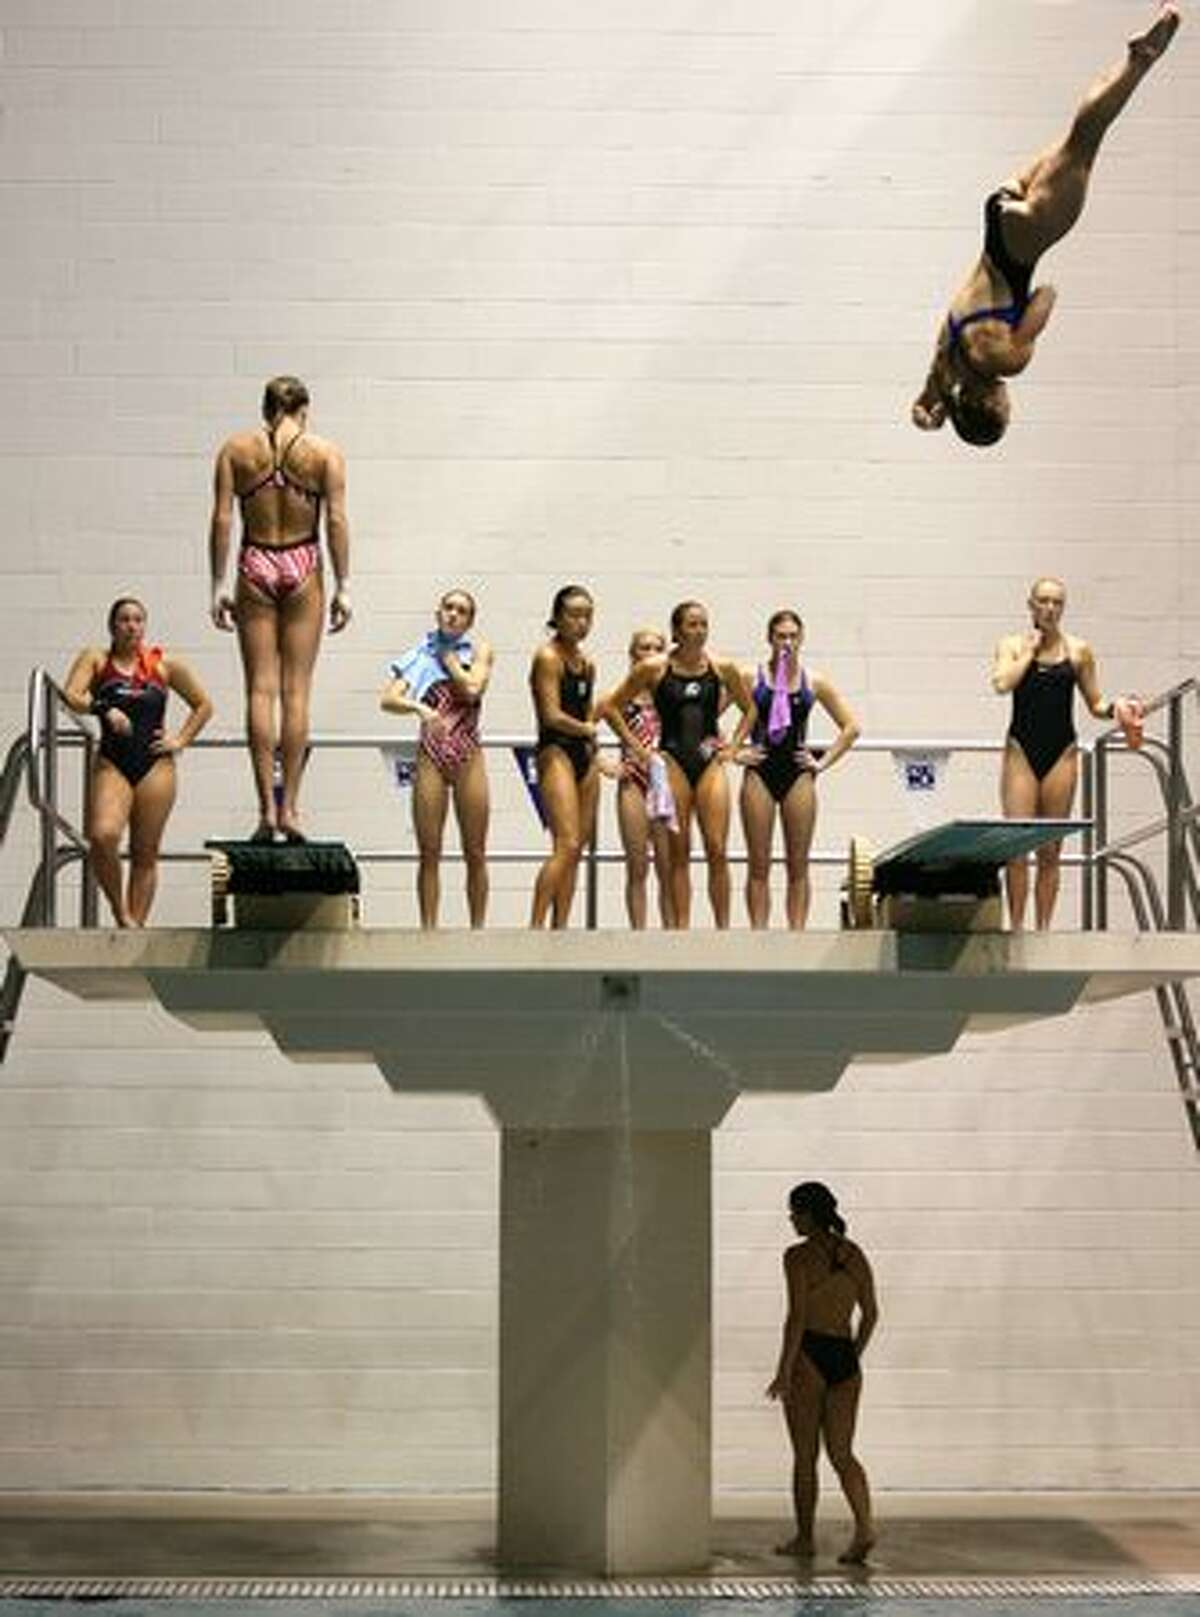 The PAC-10's top female divers prepare for the women's three-meter preliminary diving competition. The PAC-10 diving championships are being held this weekend at the Weyerhaeuser-King County Aquatic Center in Federal Way. Competition continues through Saturday. (David Ryder/Seattlepi.com)